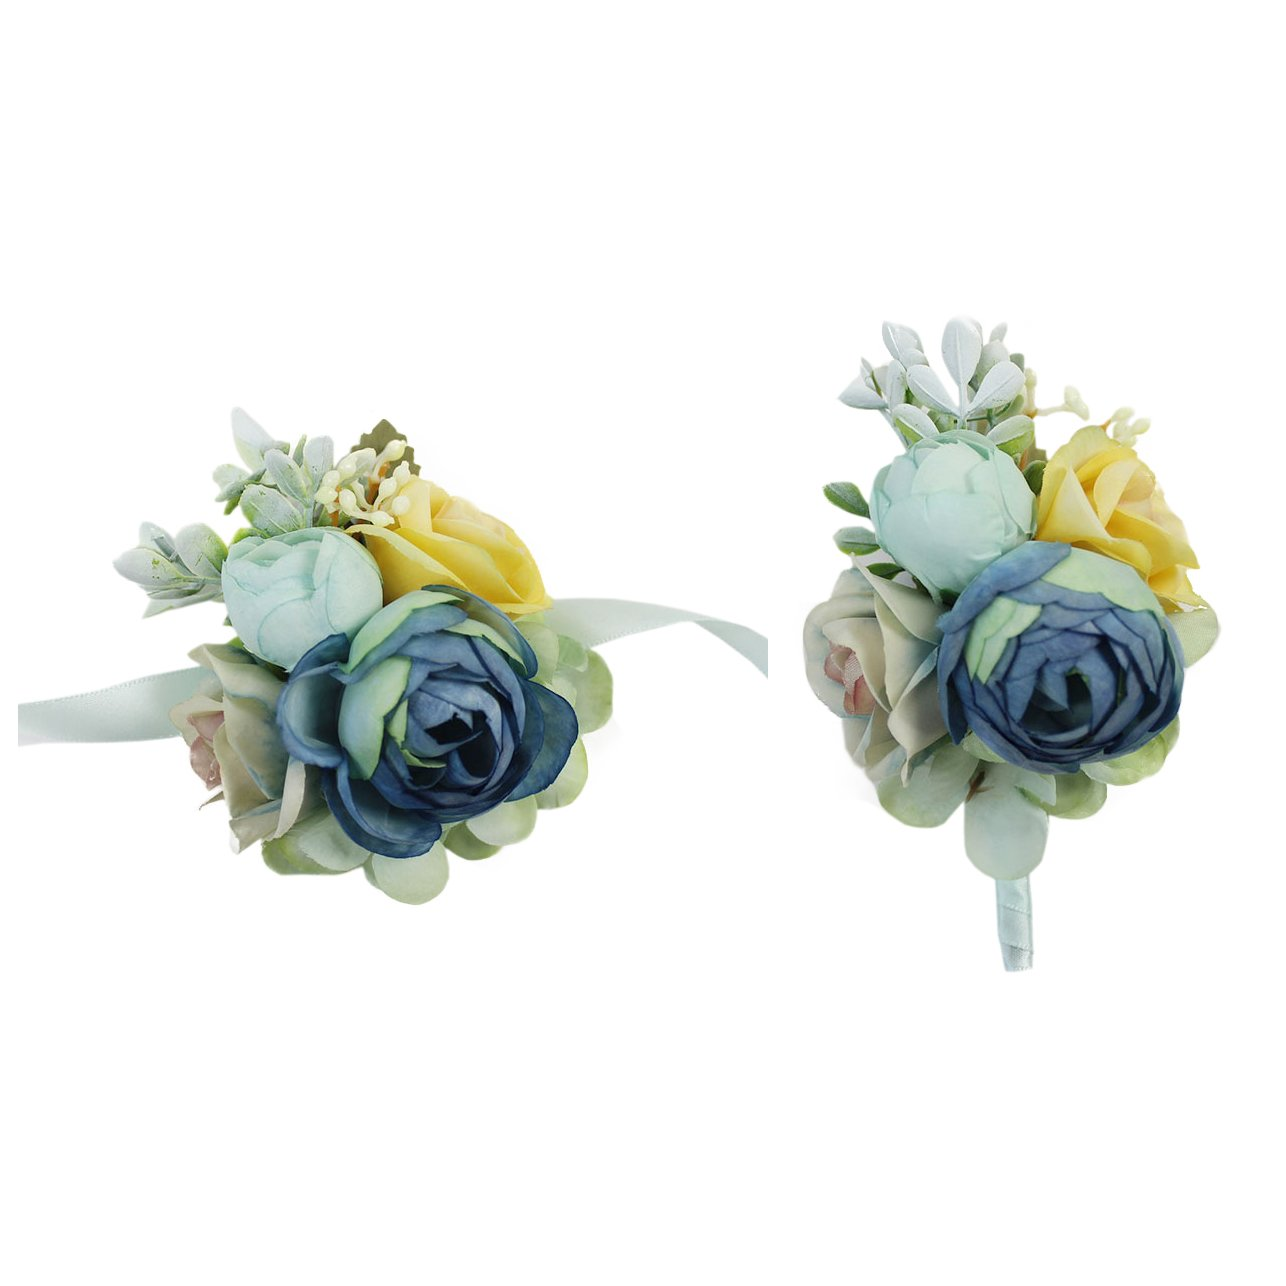 USIX 2pc Pack-Handmade Artificial Peony Flower Wrist Corsage With Satin Wristband for Girl Bridesmaid Wedding Party Prom Flower Corsage Hand Flower (Champagne Wrist Corsage x2)